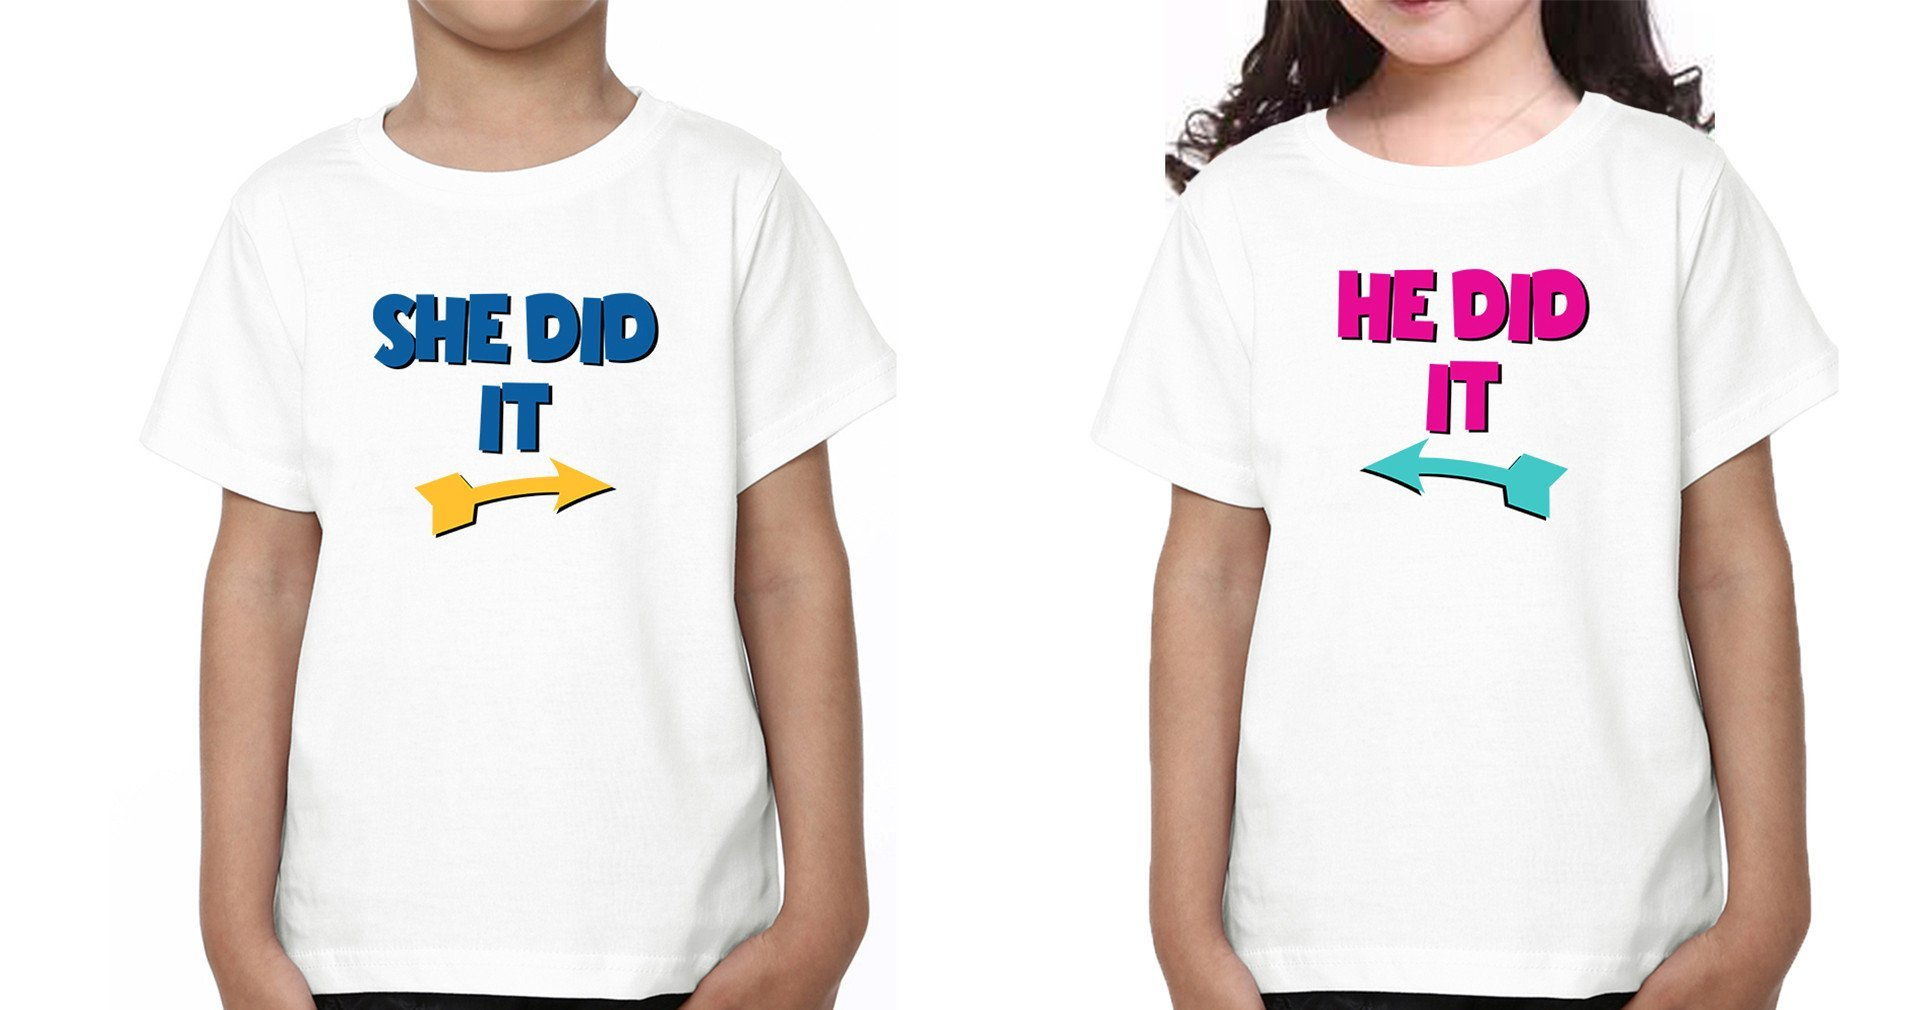 ektarfa.com @ Buy Best T-shirts Online in India Brother Sister T-Shirts He Did She Did kid Brother Sister T Shirts